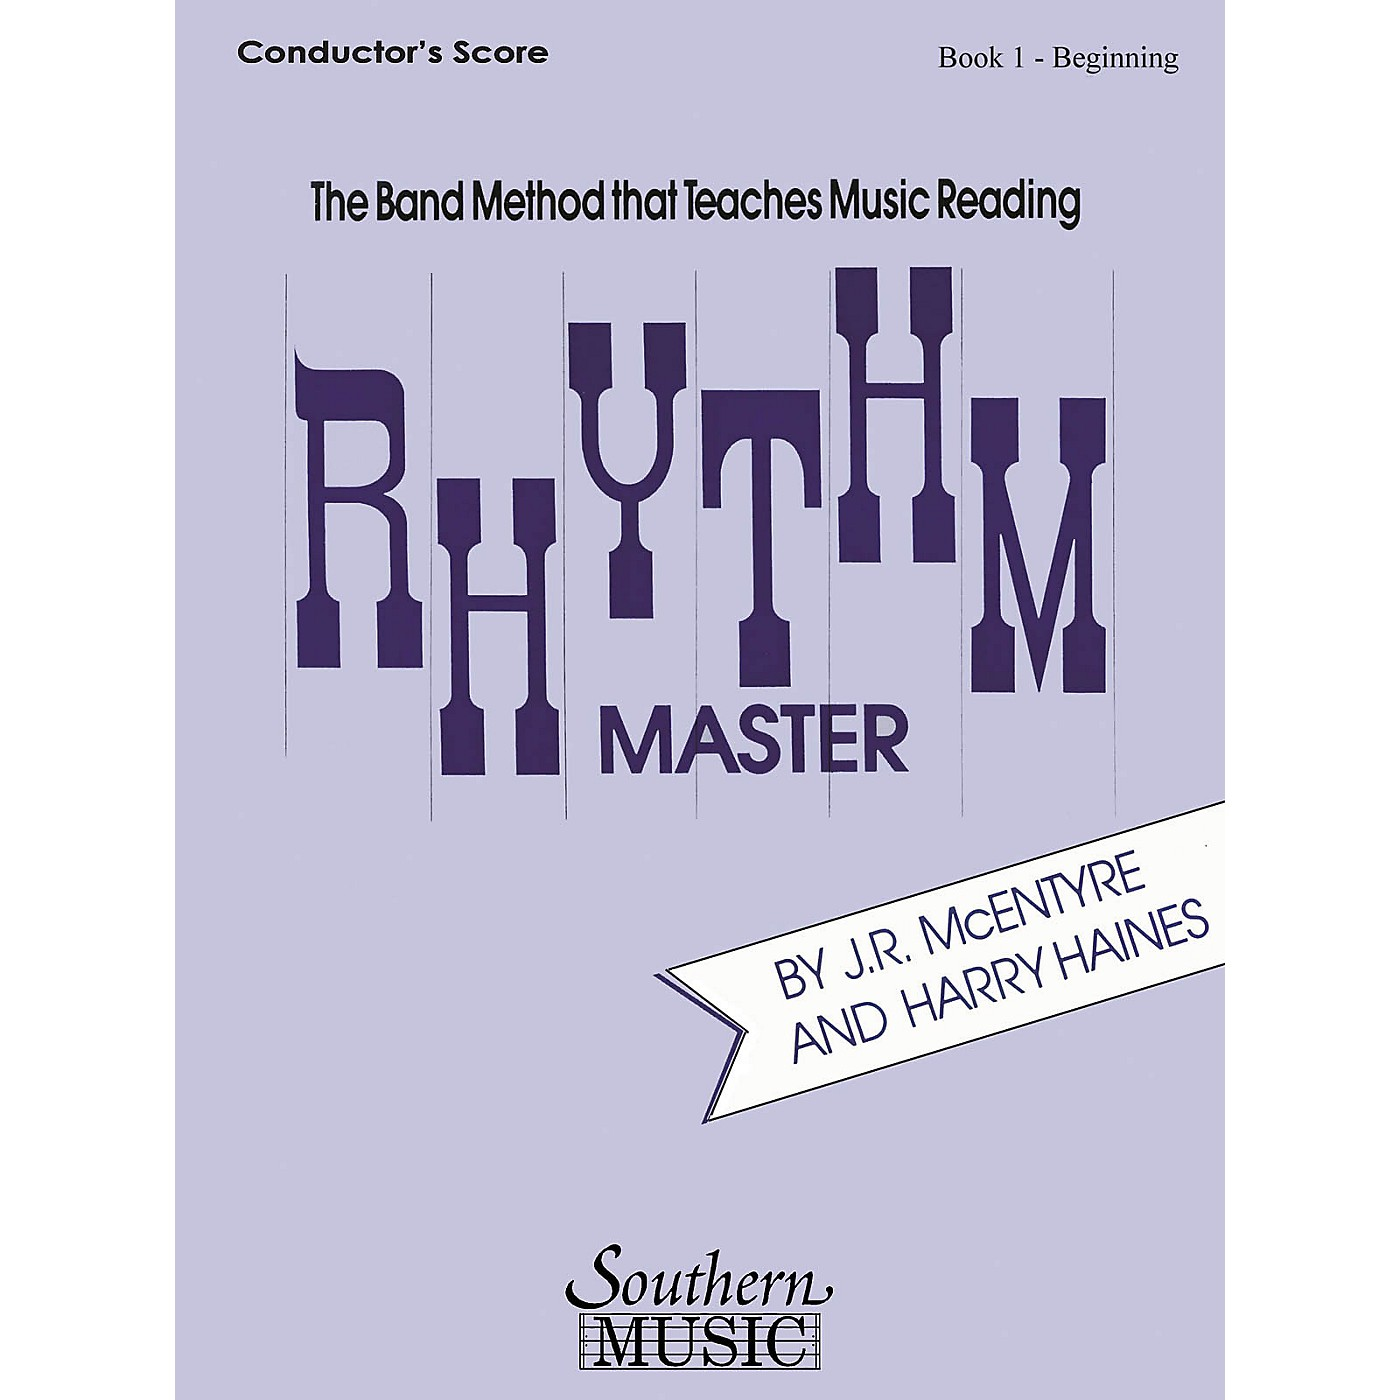 Southern Rhythm Master - Book 1 (Beginner) (Bassoon) Southern Music Series by Harry Haines thumbnail